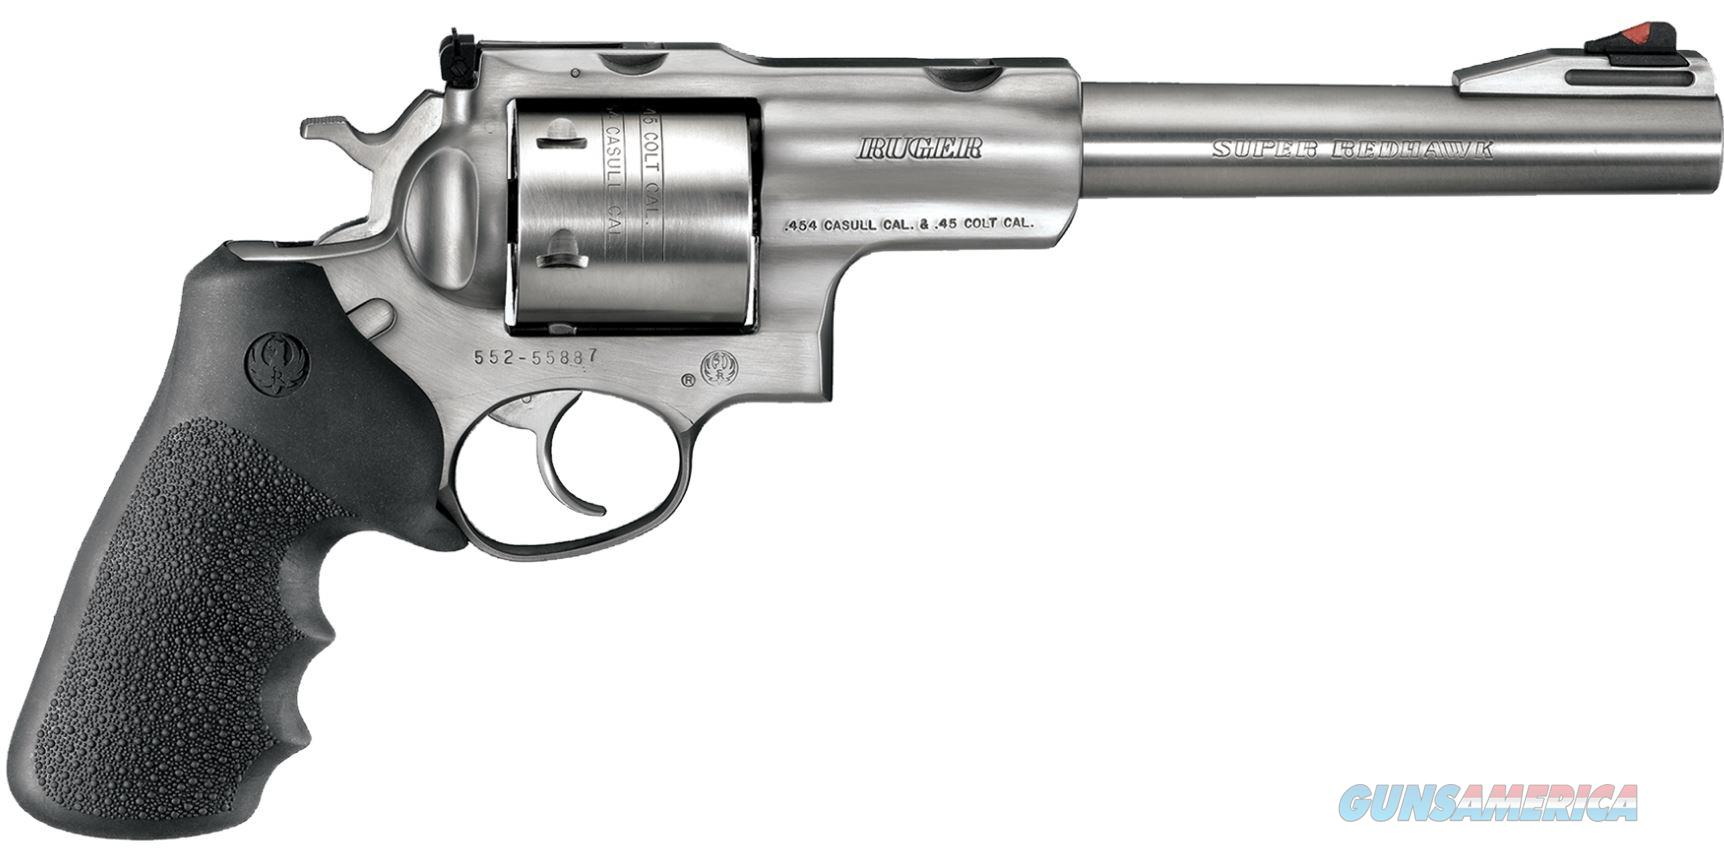 "Ruger Super Redhawk .454 Casull 7.5"" 6 Shot Hogue Grips - New in Box  Guns > Pistols > Ruger Double Action Revolver > Redhawk Type"